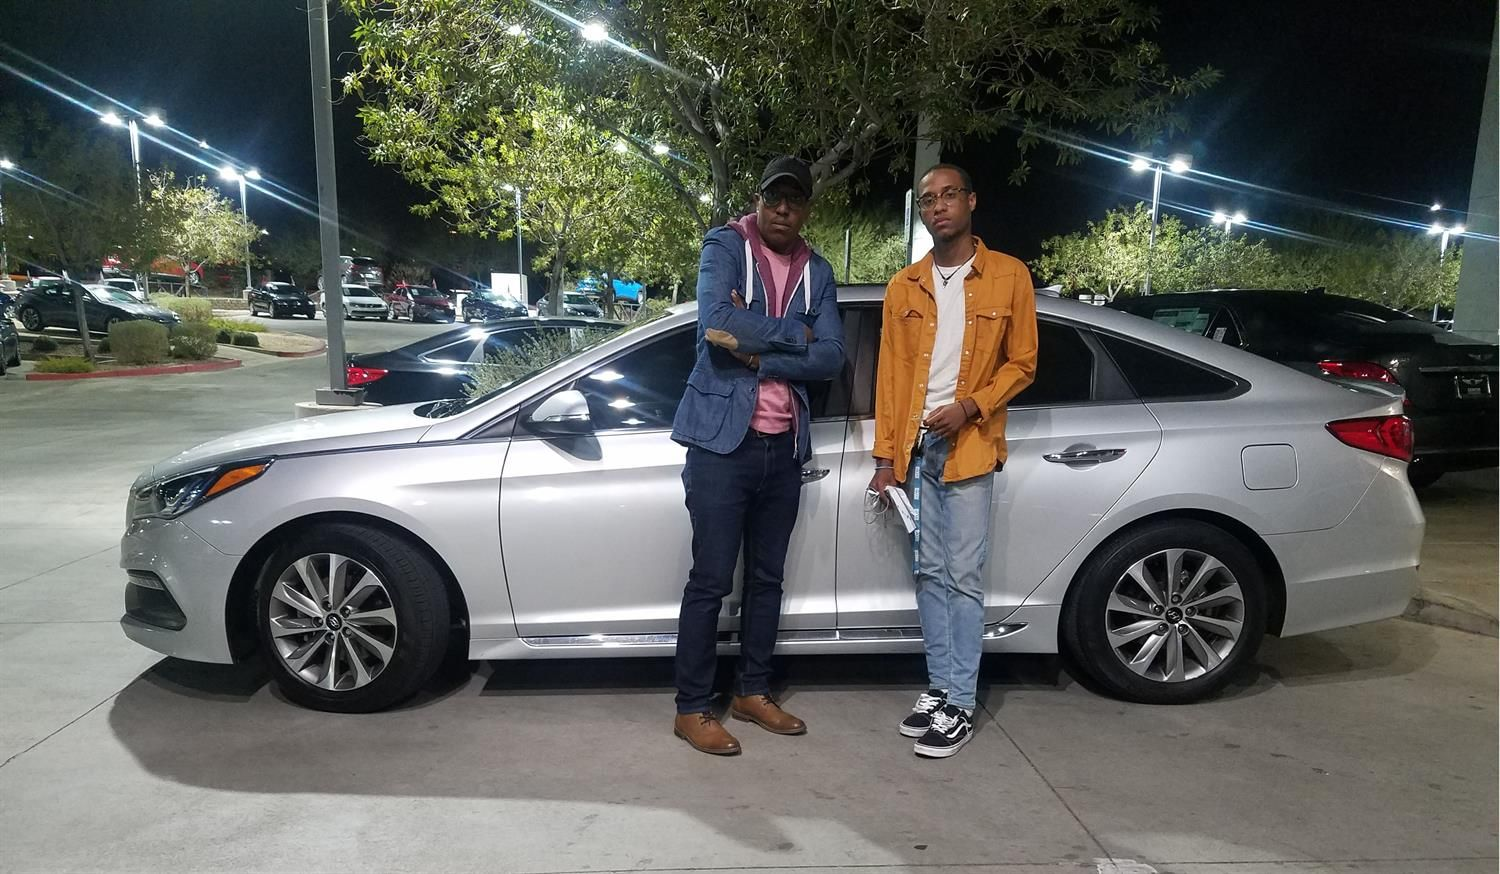 Thank You Divani For Choosing To Be A Part Of The Henderson Hyundai Superstore Family Enjoy Your New Vehicle Mohamma New Hyundai Hyundai Hyundai Dealership